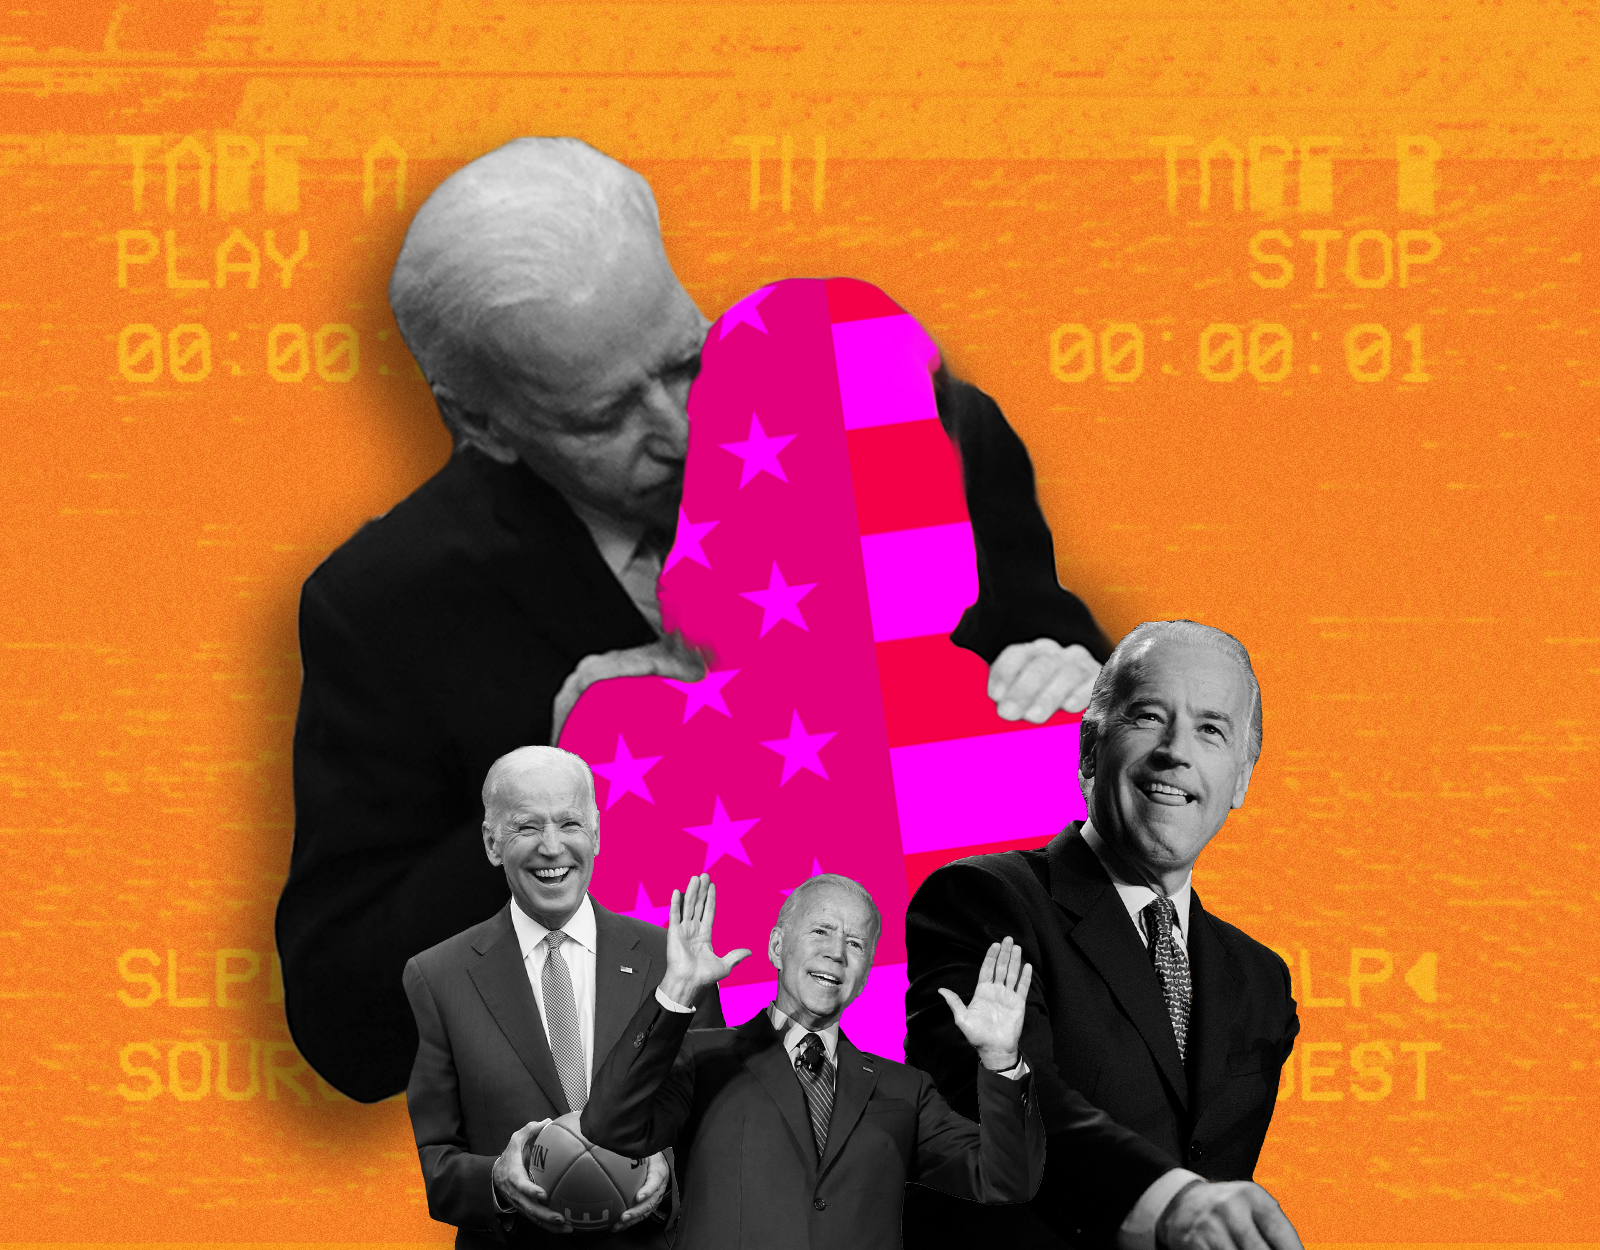 Joe Biden Is a Gaffe Machine (And His Campaign Should Embrace It)